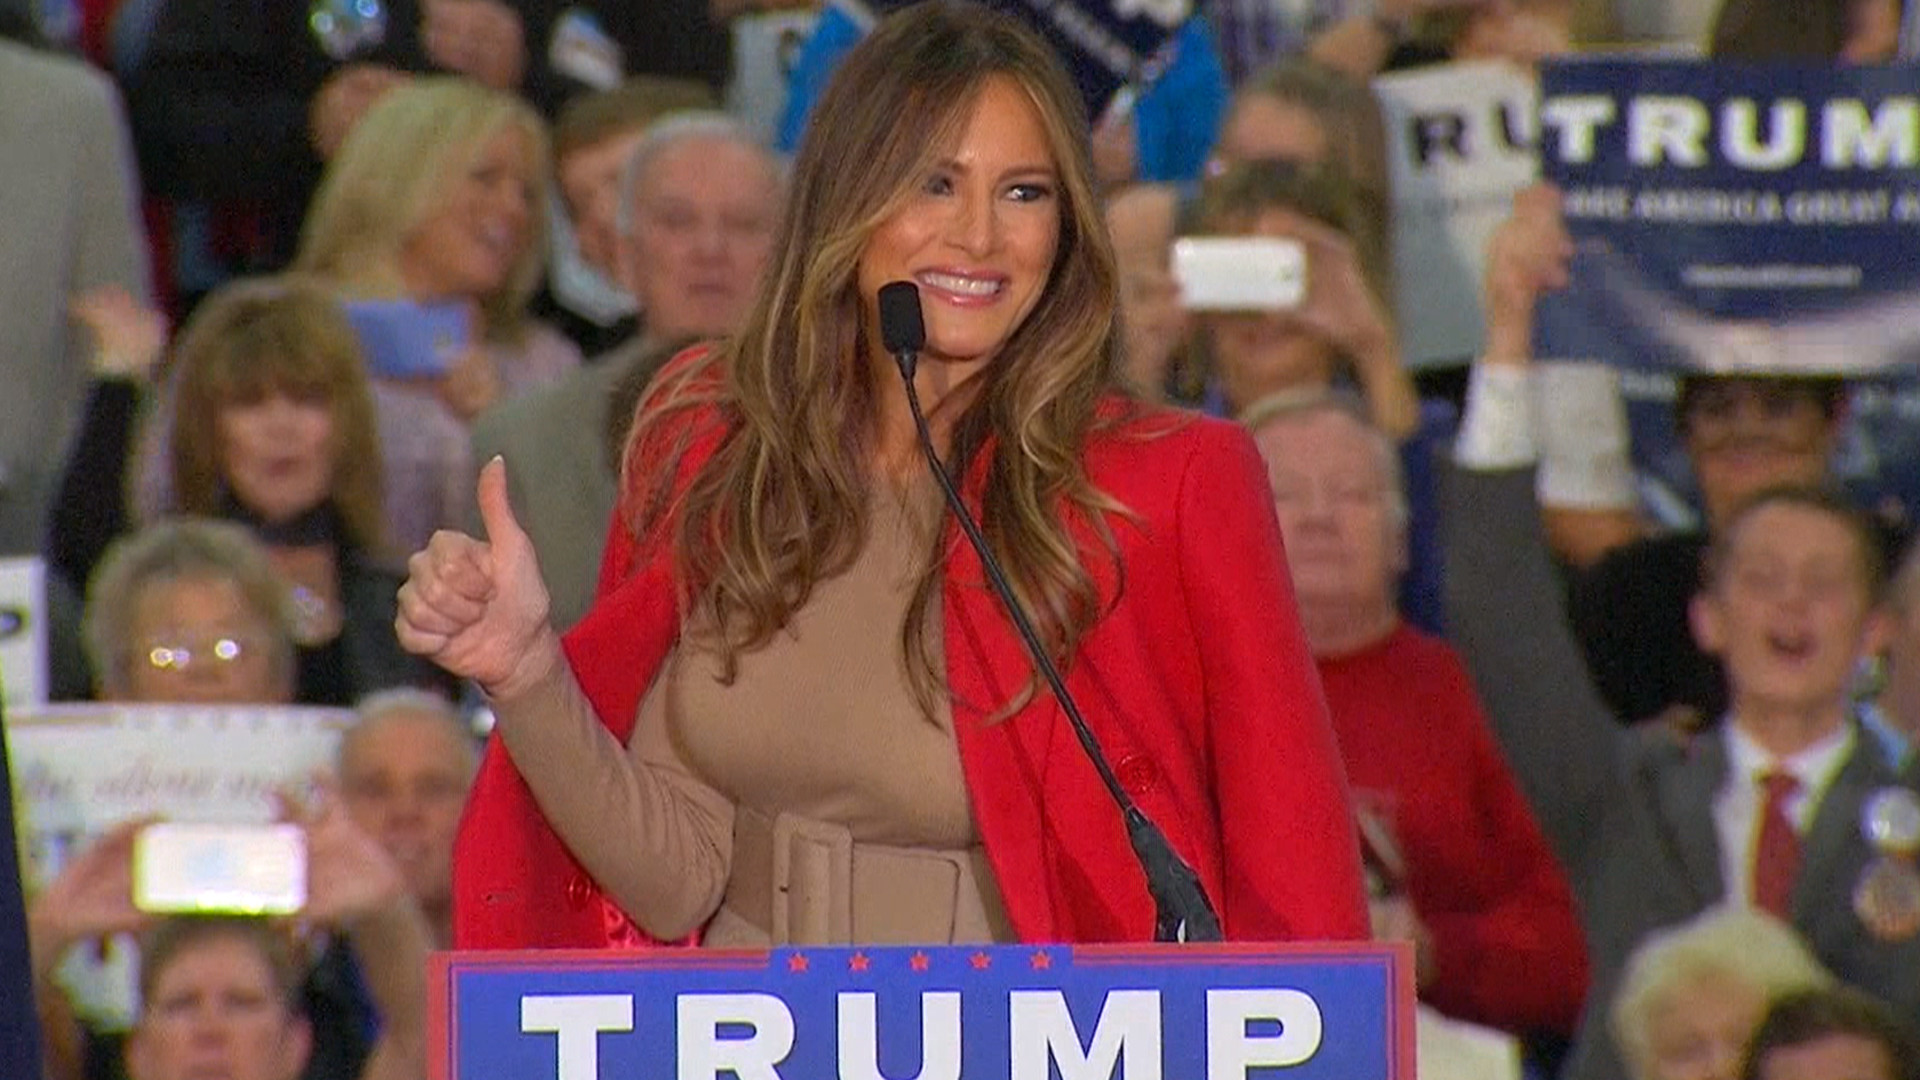 Donald Trump's wife, family joins him on the campaign trail – TODAY.com